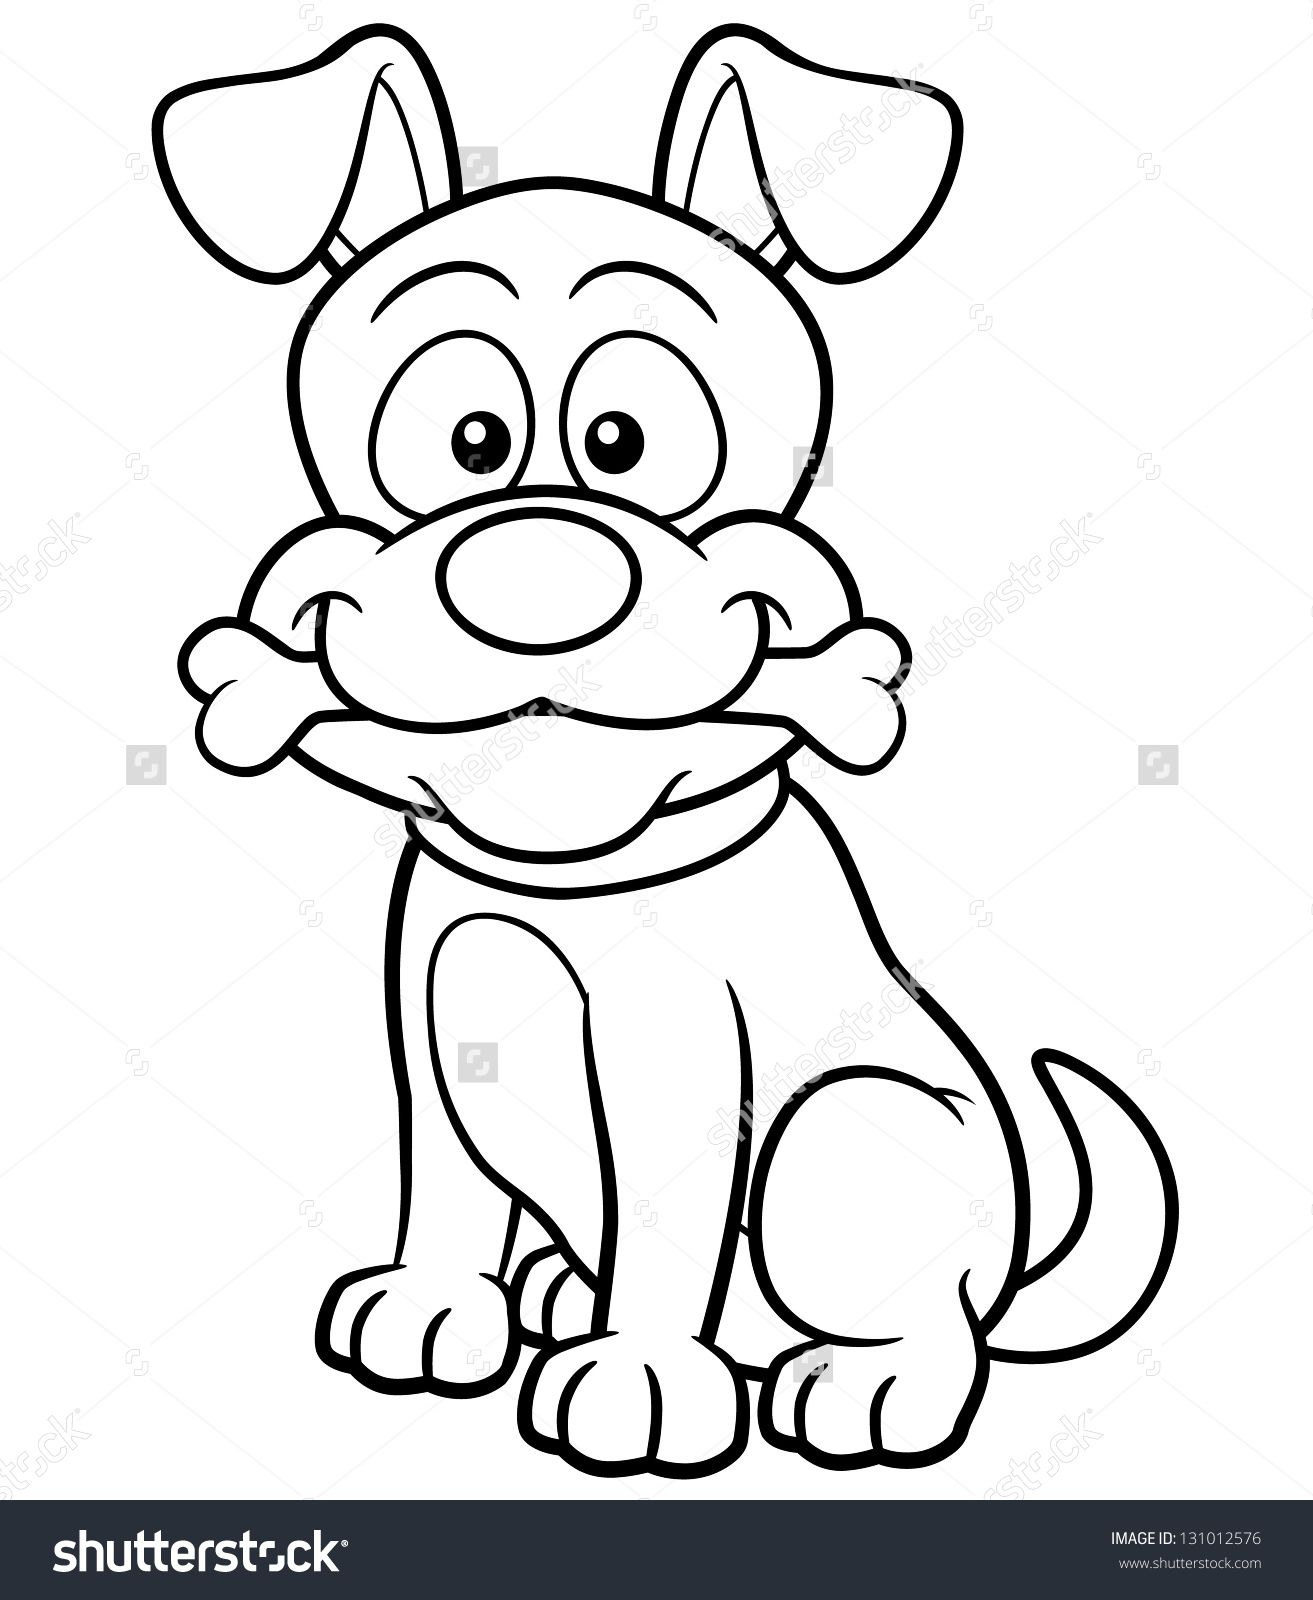 Vector illustration of cartoon dog coloring book